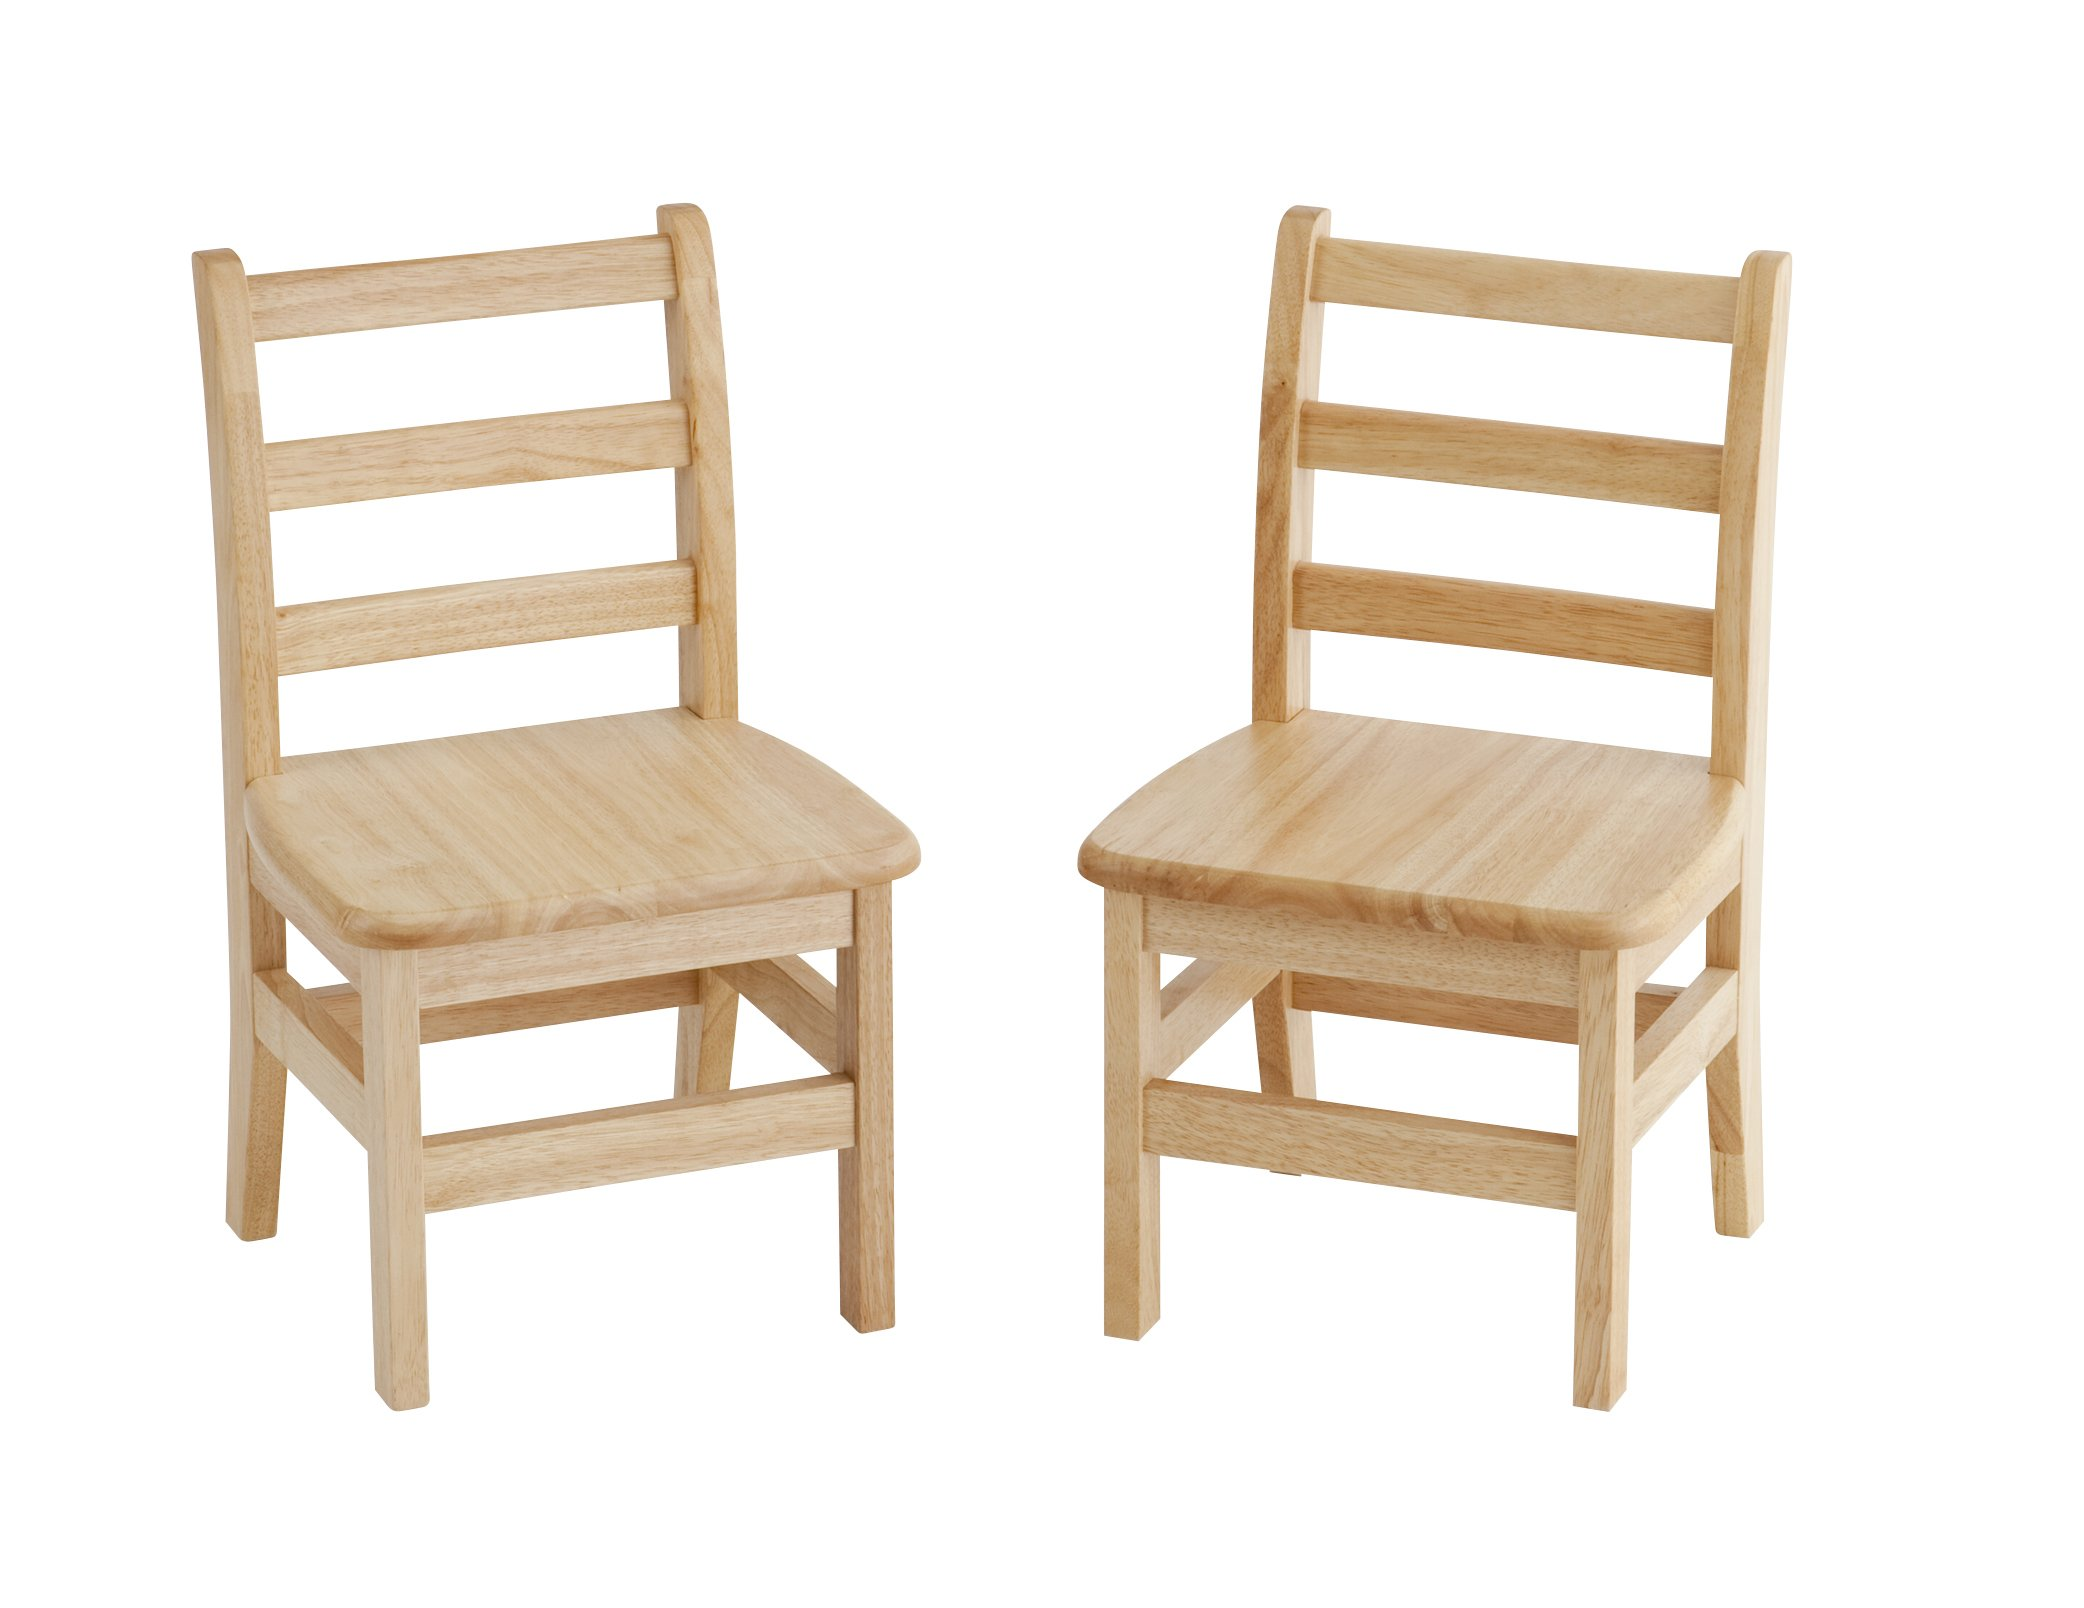 ECR4Kids 12'' Hardwood 3-Rung Ladderback Chair, Natural (2-Pack)